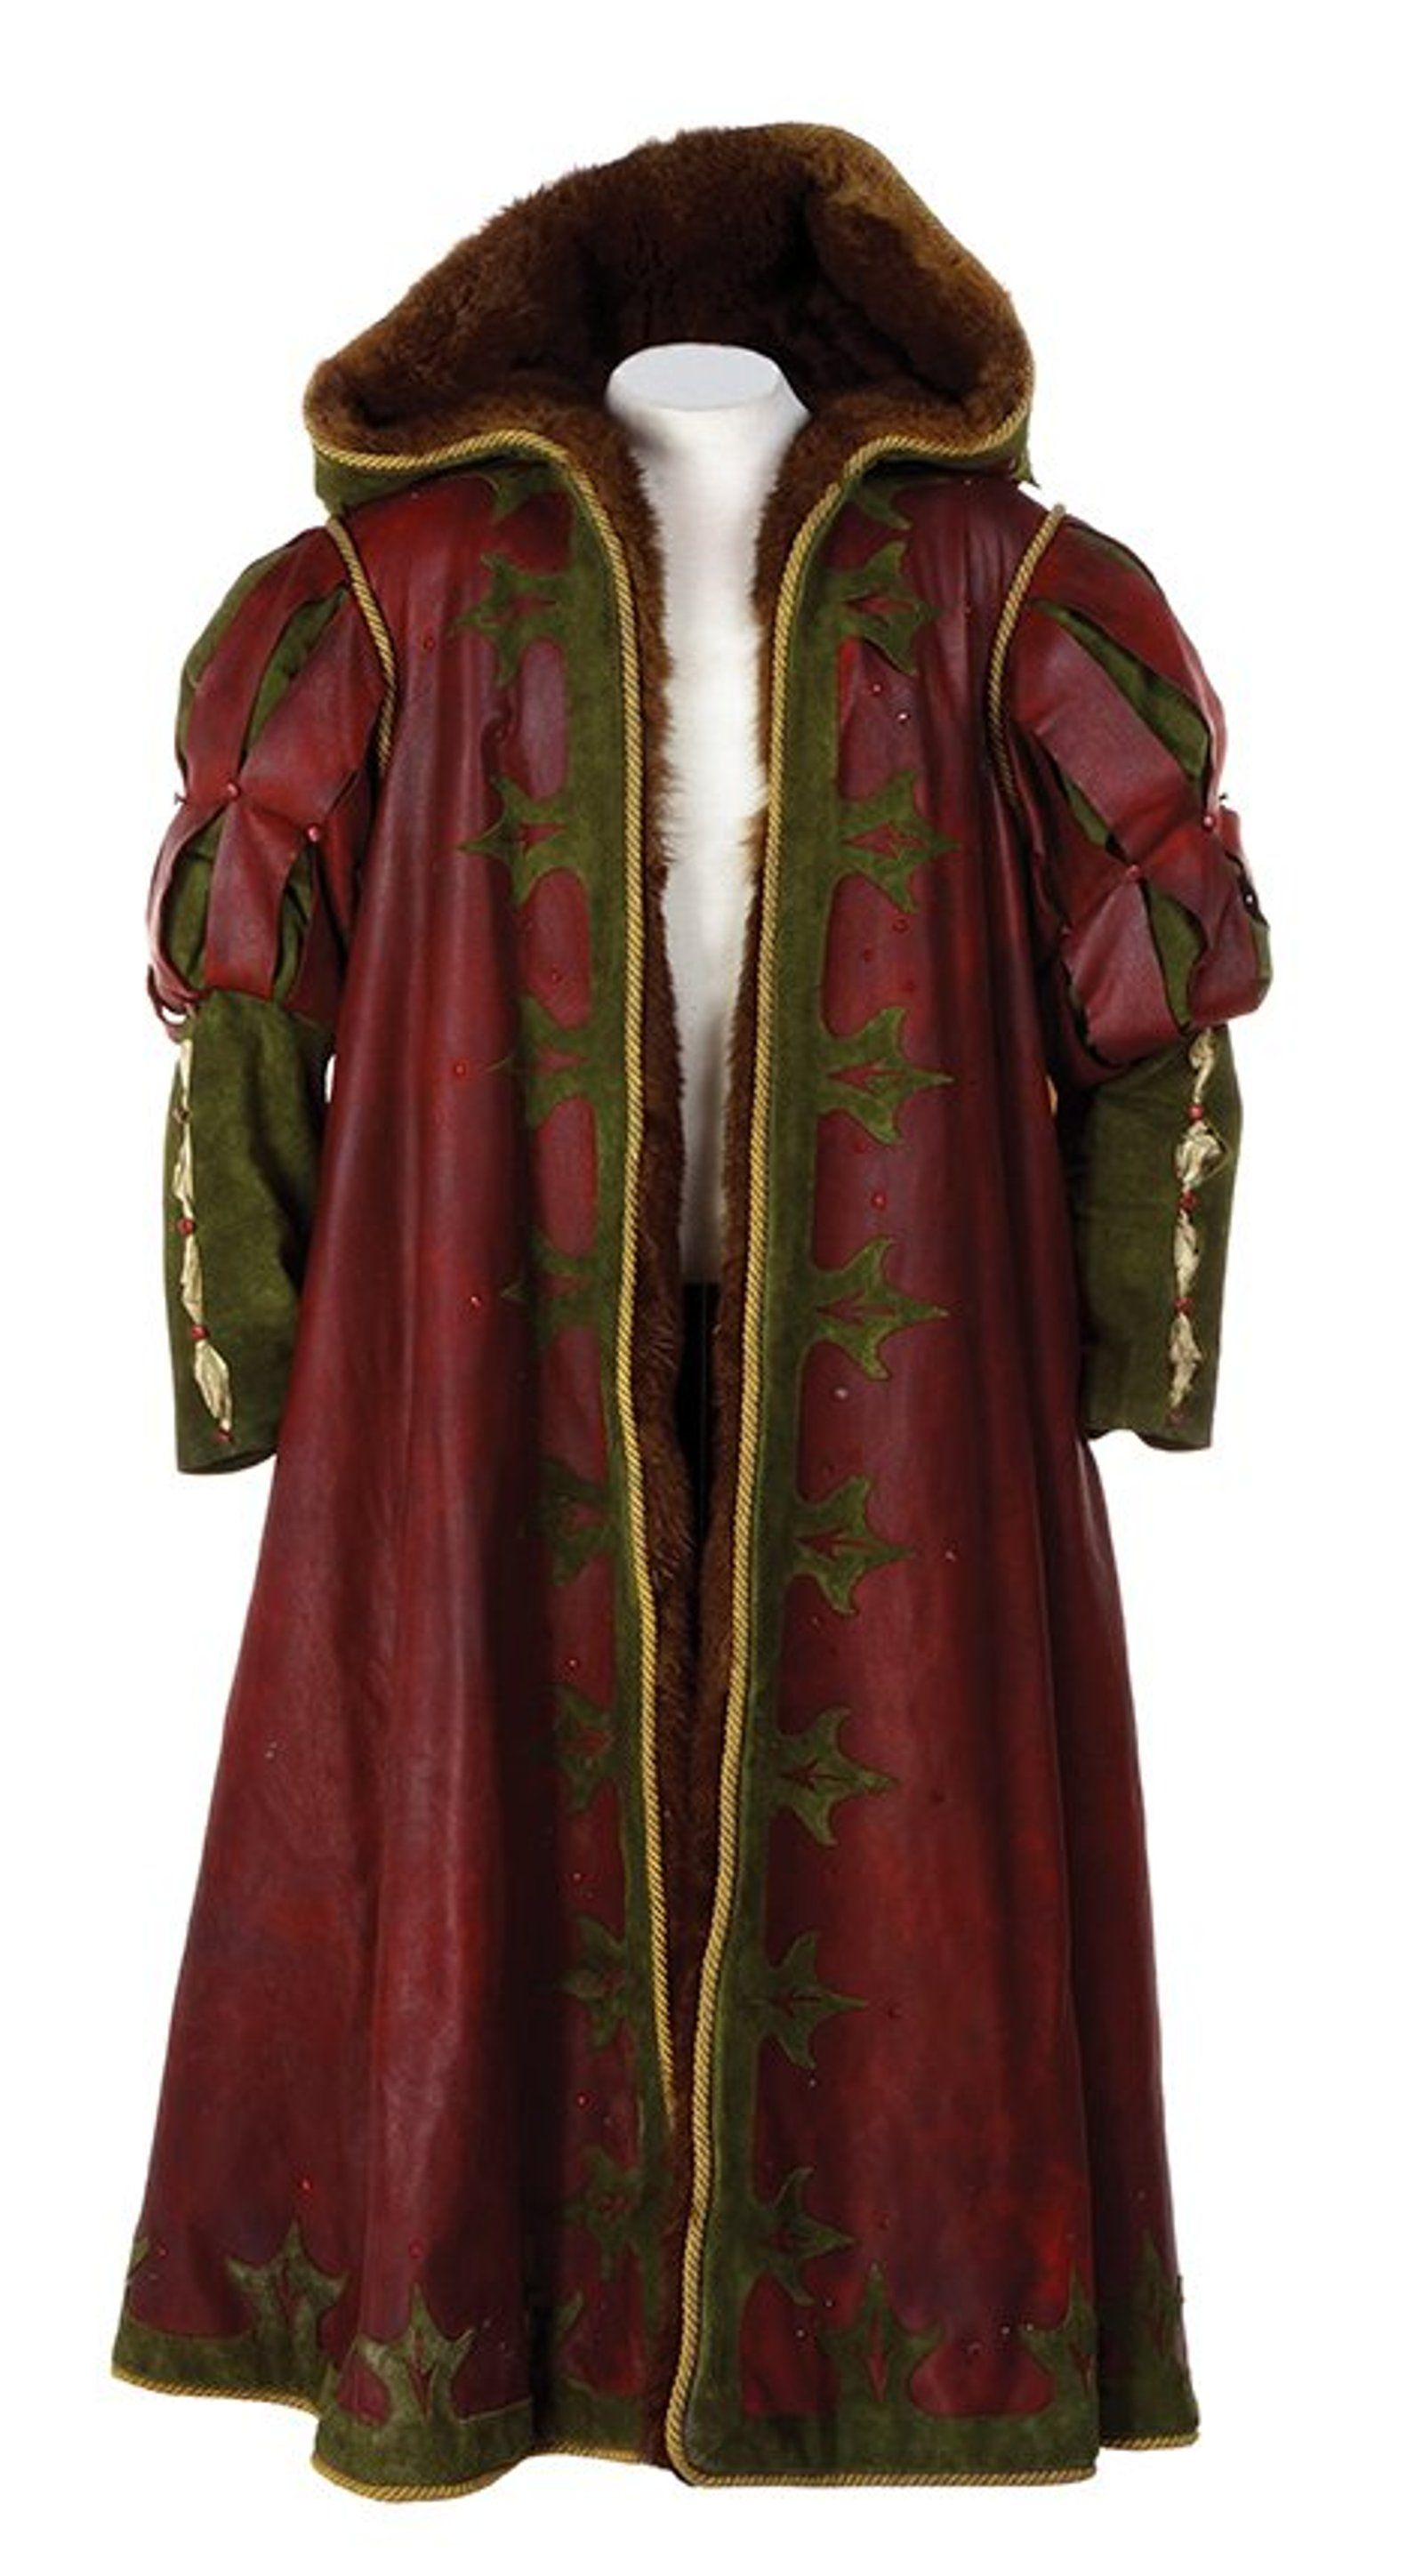 Father Christmas leather and fur coat. Narnia costumes